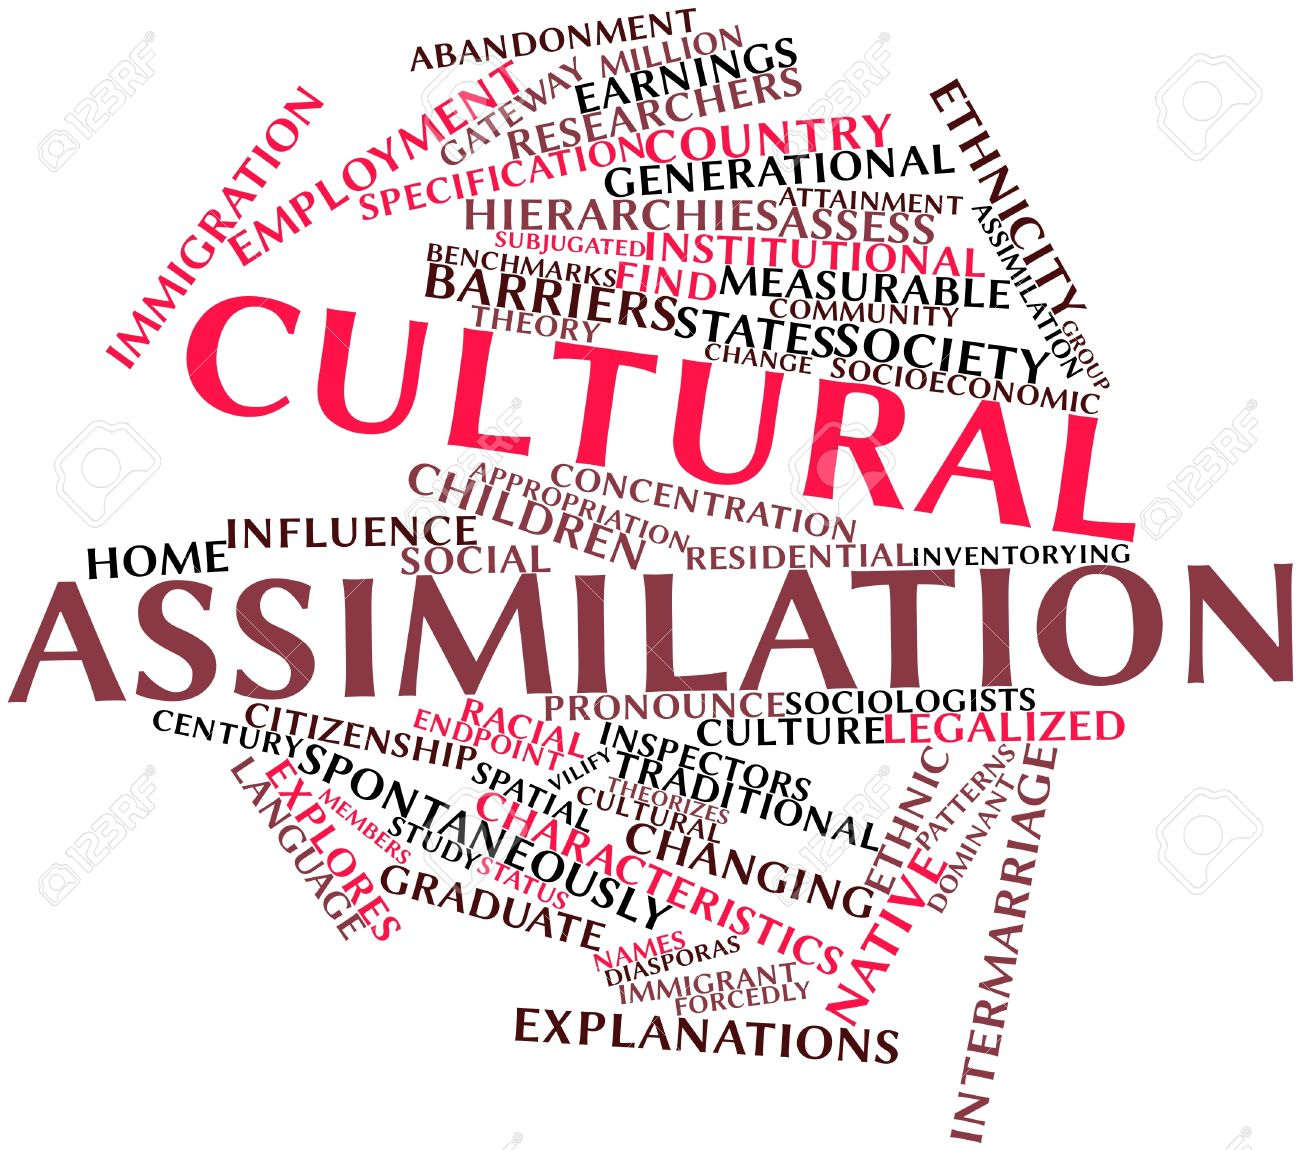 What is assimilation